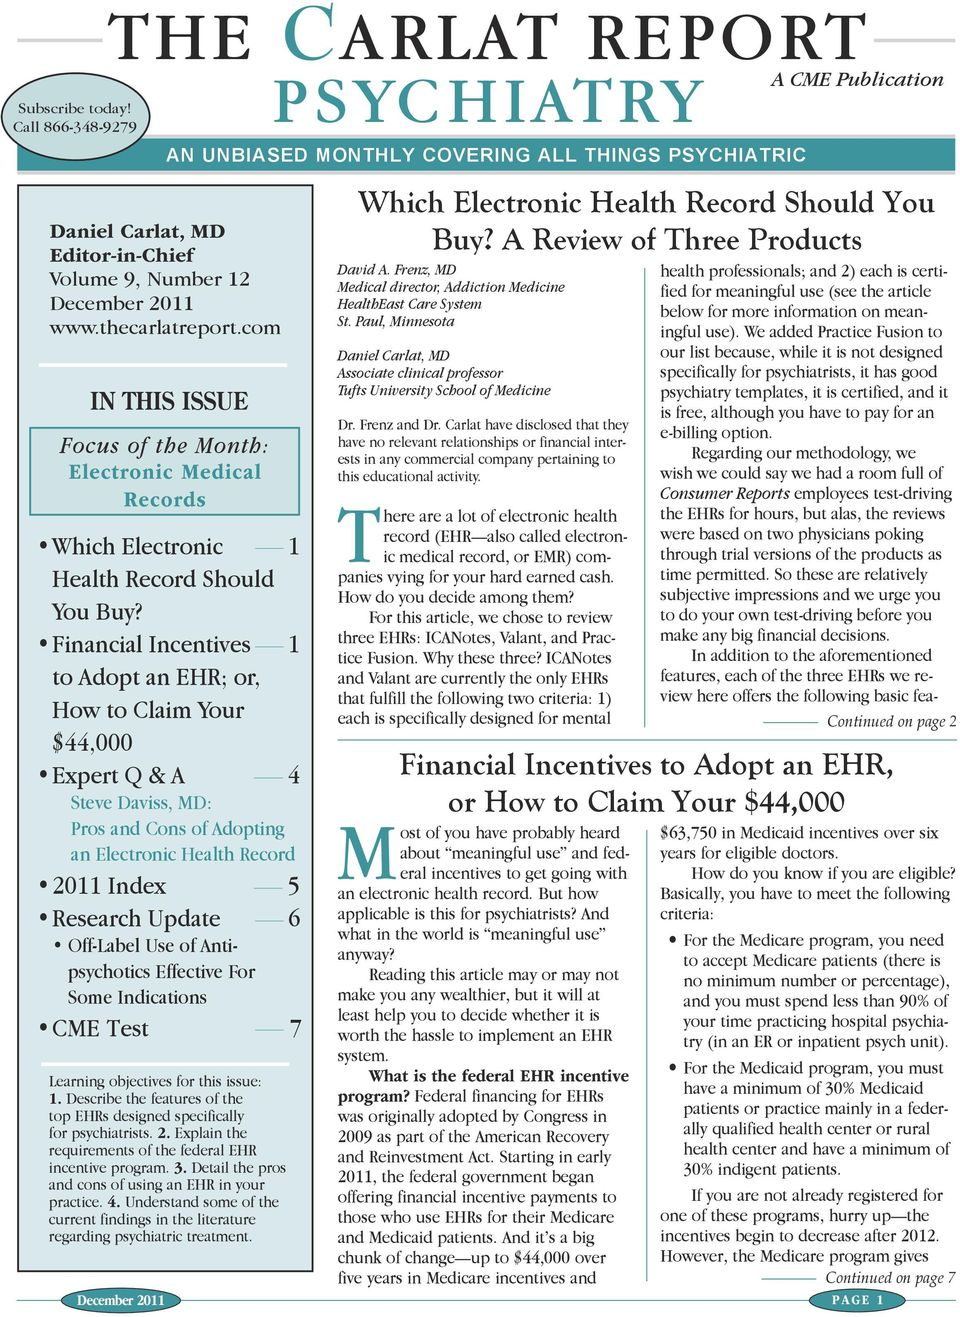 Financial Incentives 1 to Adopt an EHR; or, How to Claim Your $44,000 Expert Q & a 4 Steve Daviss, MD: Pros and Cons of Adopting an Electronic Health Record 2011 Index 5 Research Update 6 Off-Label